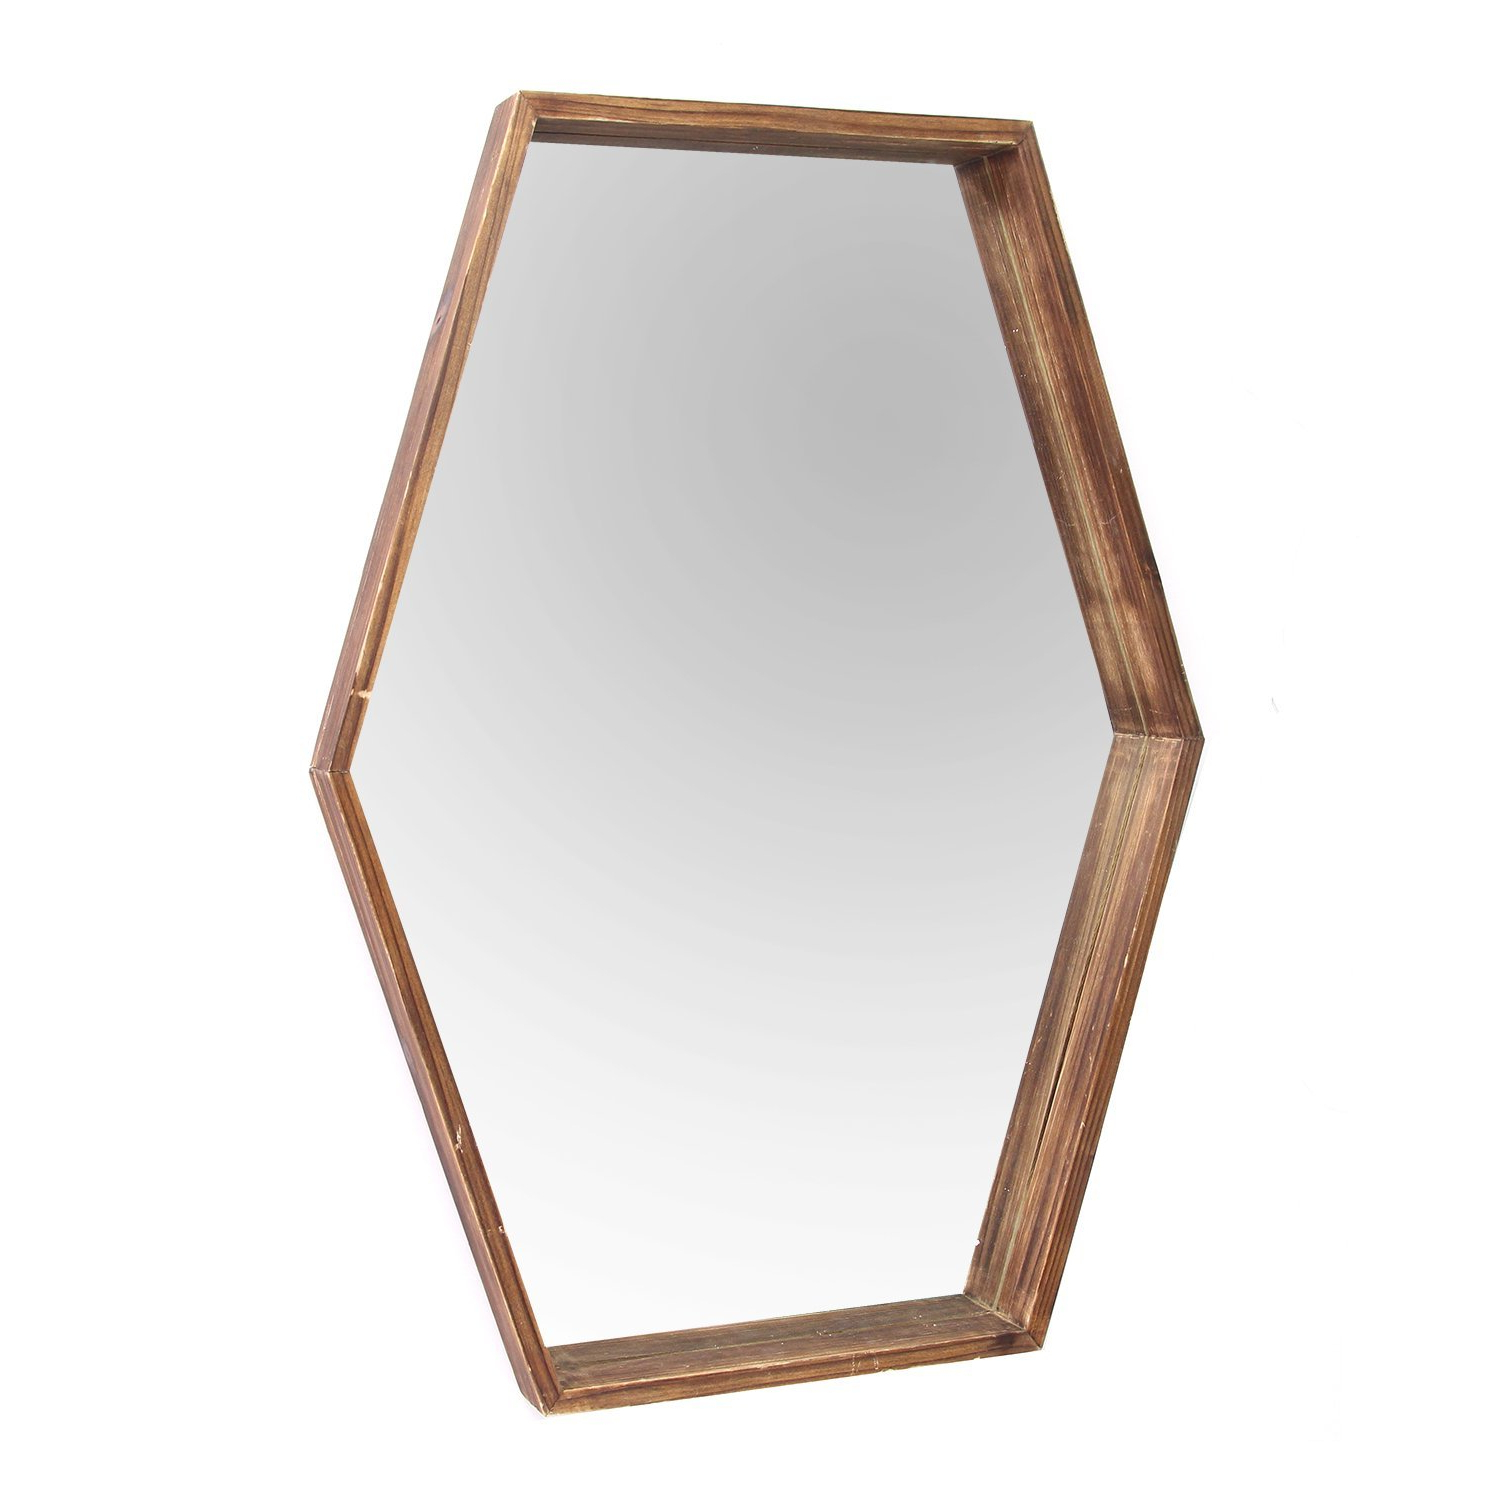 Corey Wood Accent Mirror Pertaining To Widely Used Wood Accent Mirrors (View 2 of 20)